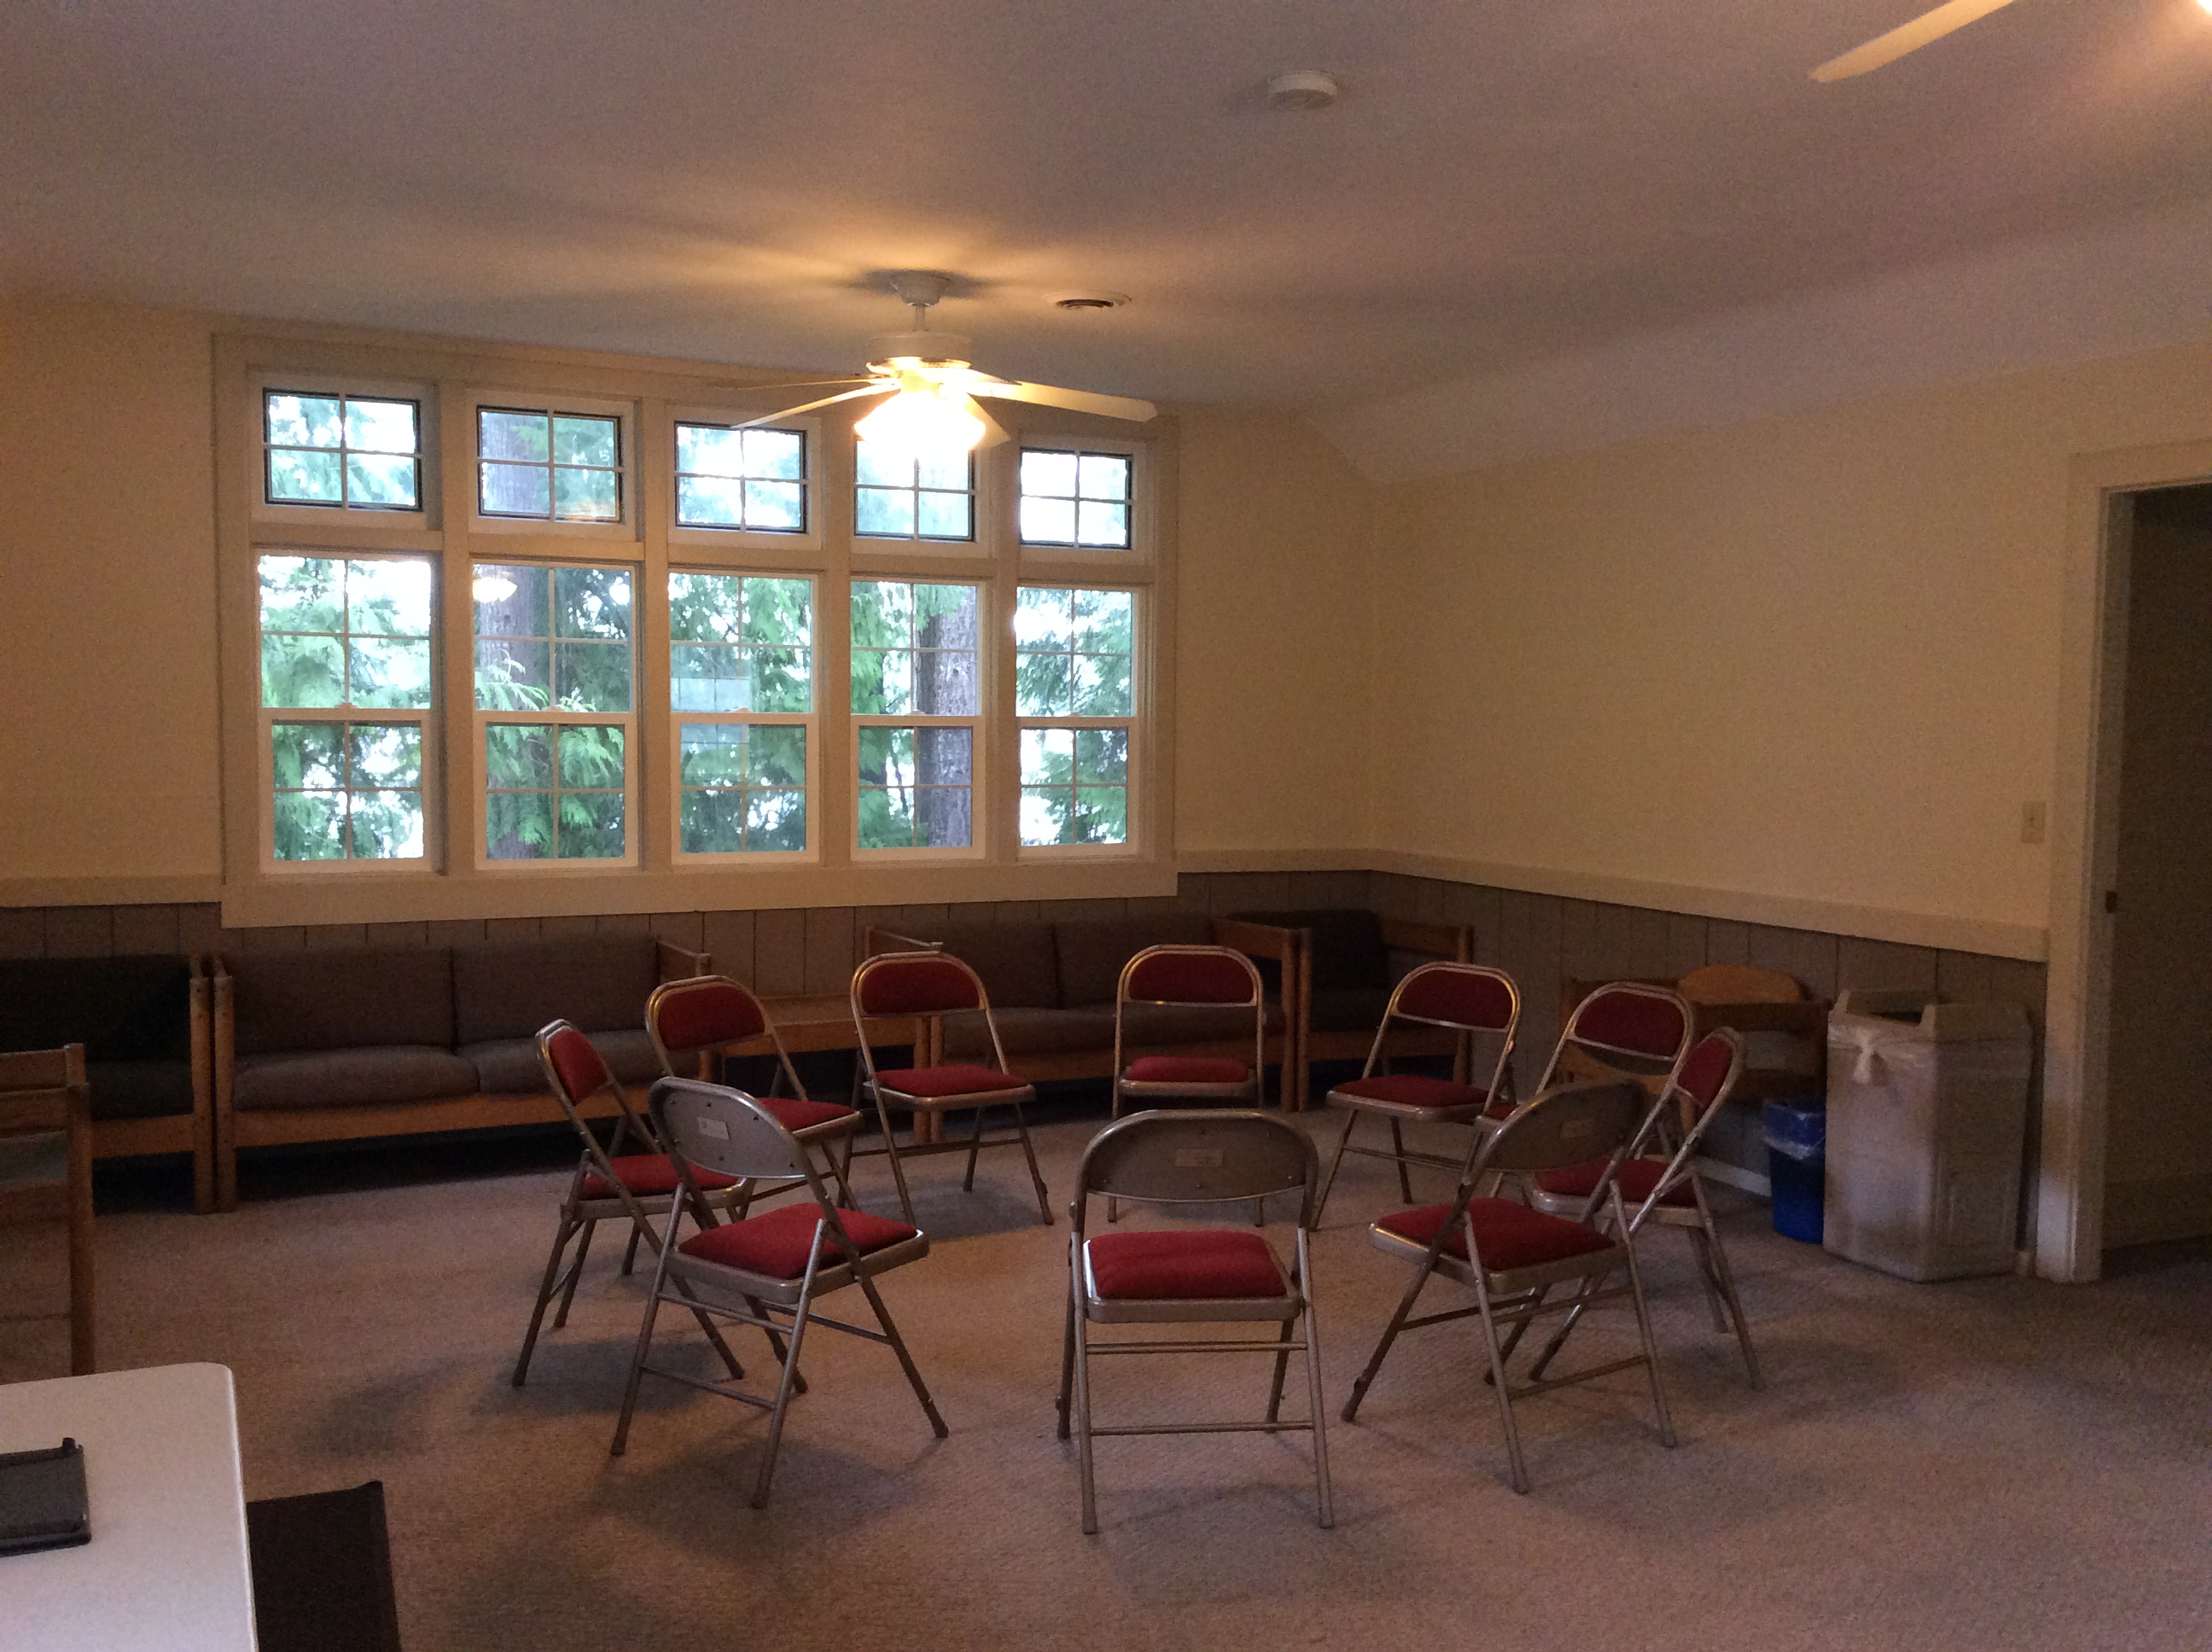 Firs Meeting Room